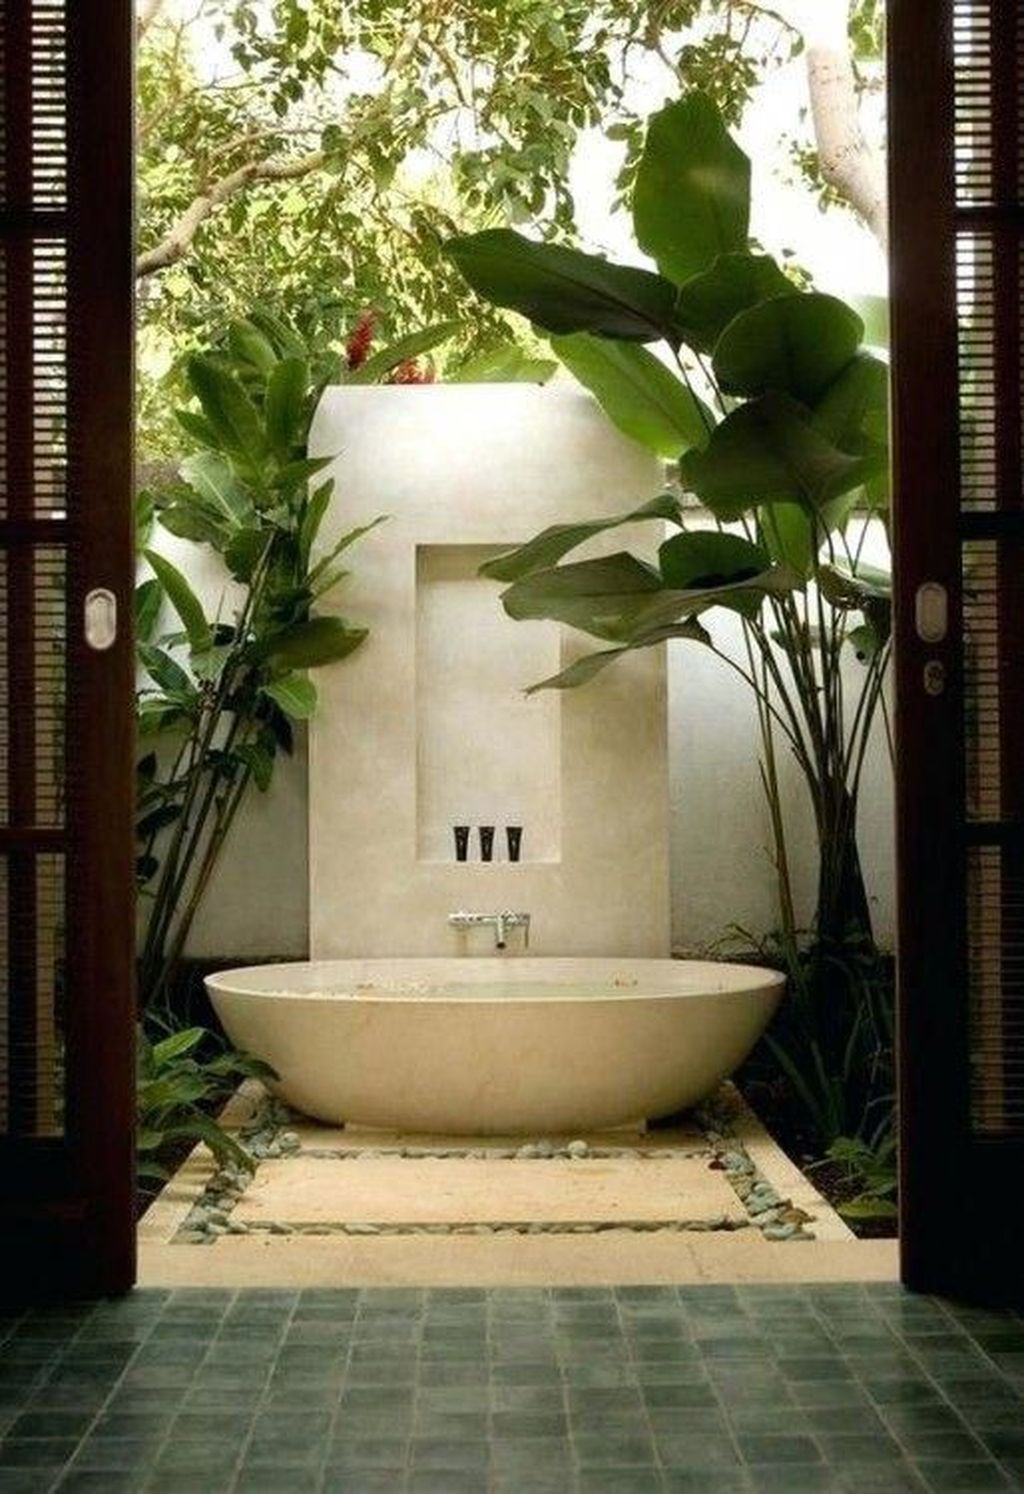 The Best Jungle Bathroom Decor Ideas To Get A Natural Impression 15